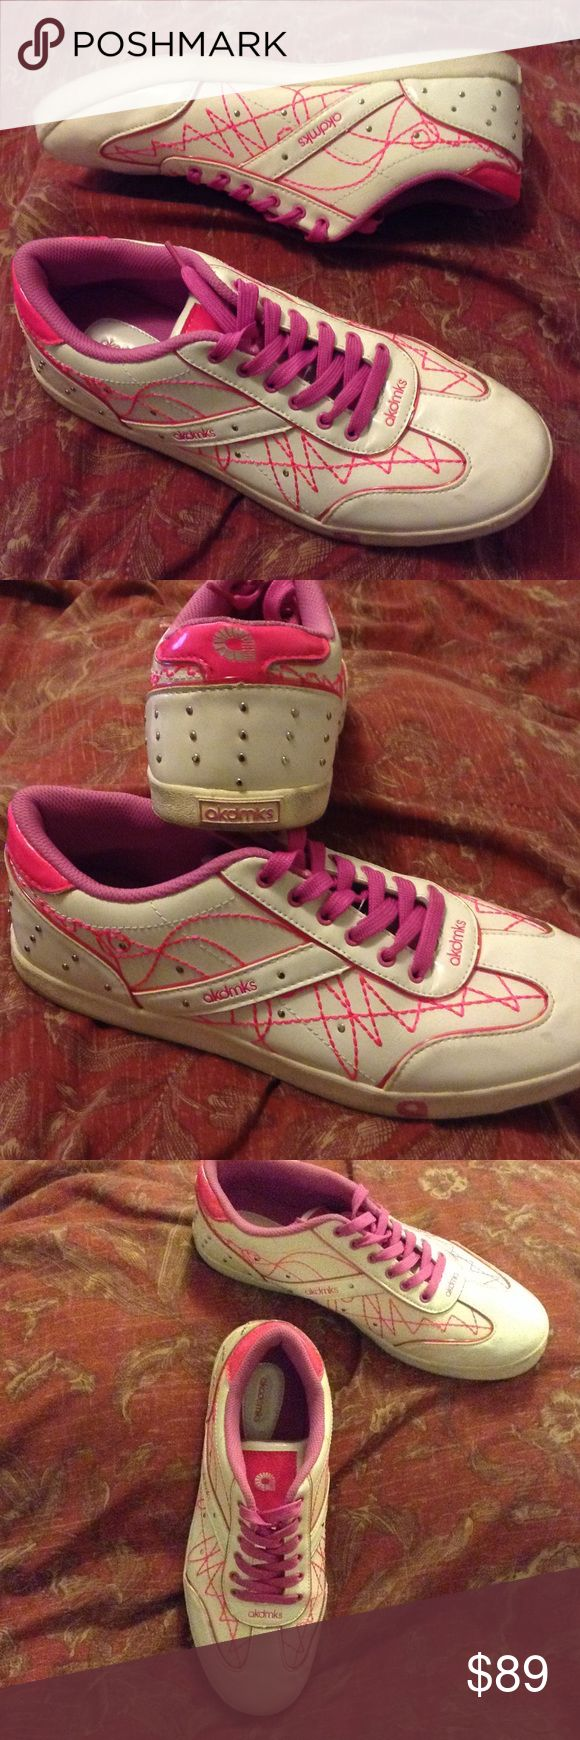 🆕 WOMENS RETRO HOT PINK STUDDED AKADEMIKS SIZE 10 2004 Hot Pink & Fuchsia with White base AKADEMIKS Casual Wear ladies shoes. Shoes have Silver studs on heel and sides. Hot Pink zigzag threads throughout. Vinyl like material. Easy to wipe clean. In good used condition. Soles are in good condition. Many wears left. Rated 4/5. AKADEMIKS  Shoes Sneakers